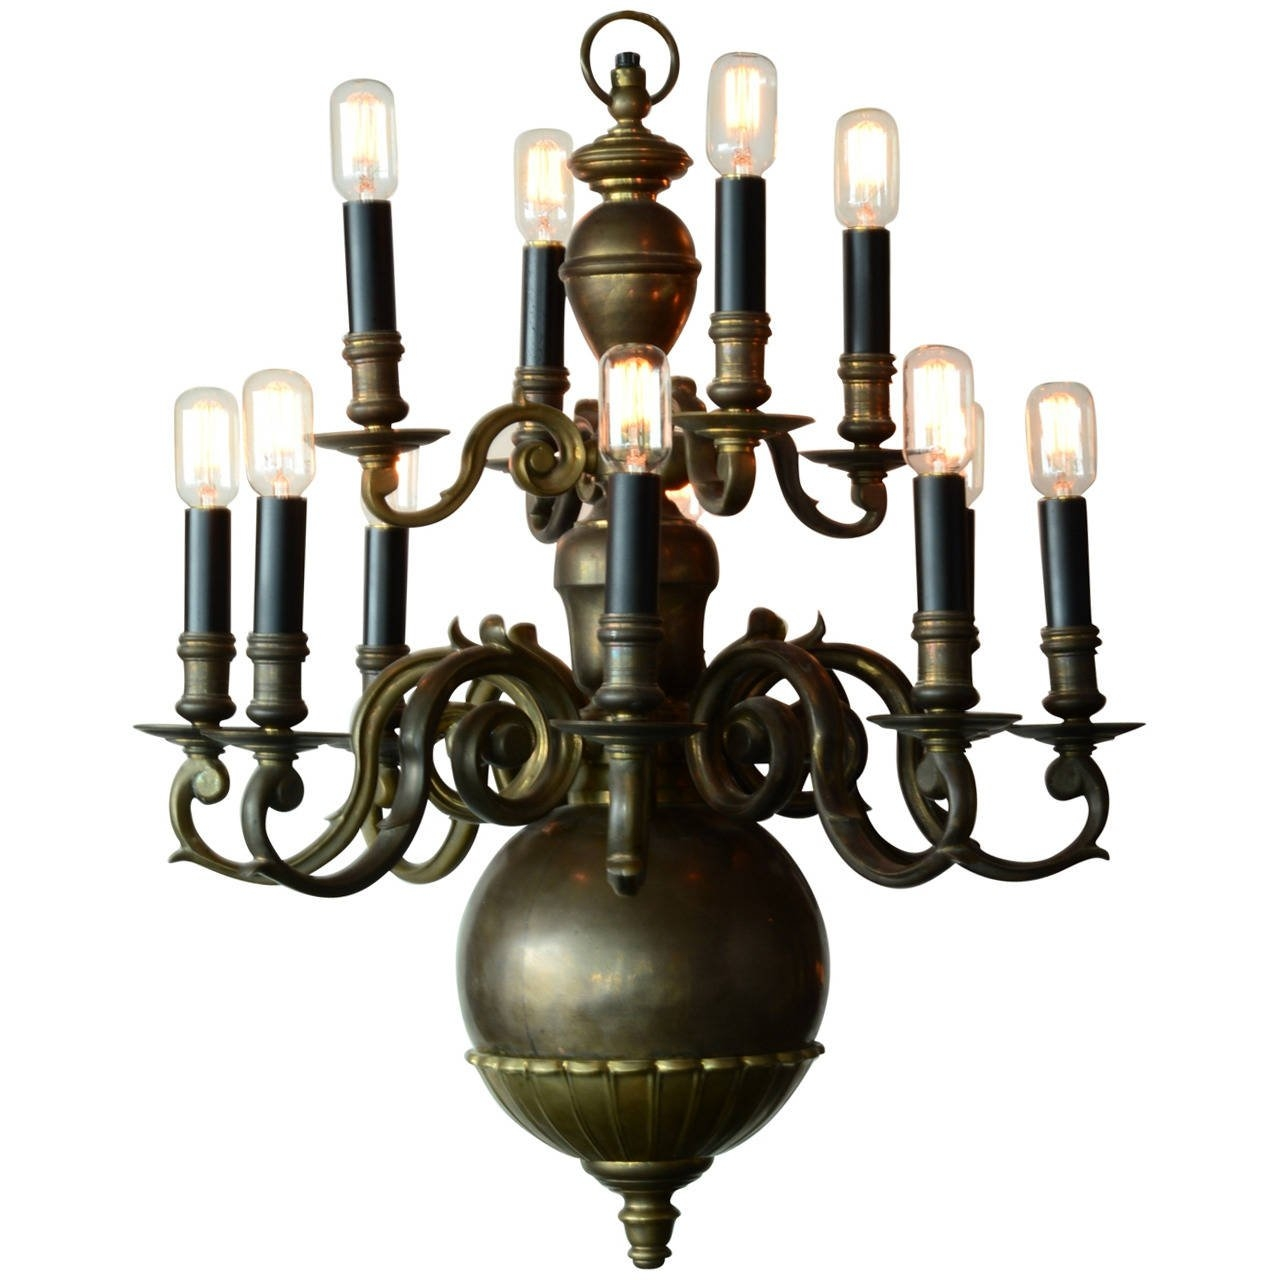 Edwardian Chandelier At 1stdibs Regarding Edwardian Chandelier (Image 7 of 15)